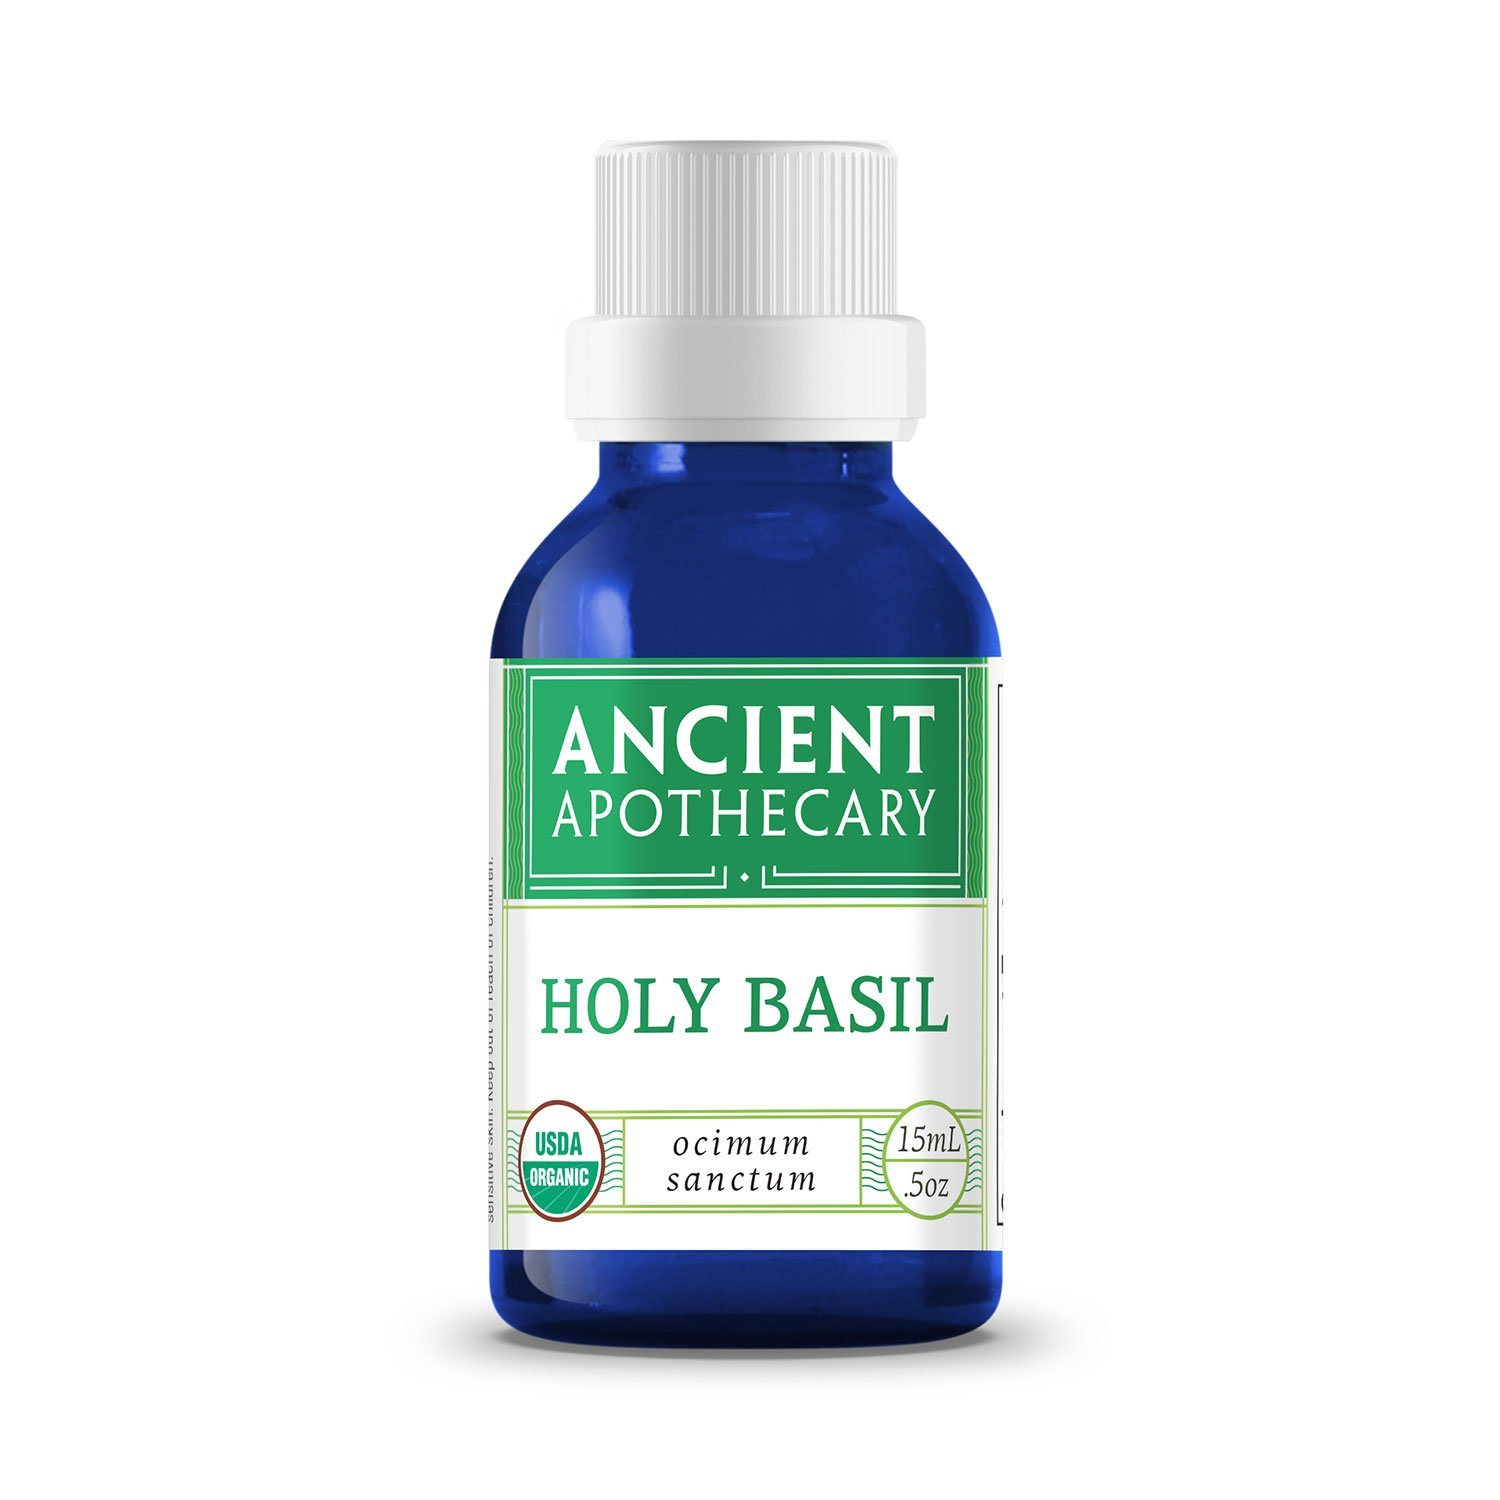 Holy Basil Organic Essential Oil from Ancient Apothecary, 15 mL - 100% Pure and Therapeutic Grade